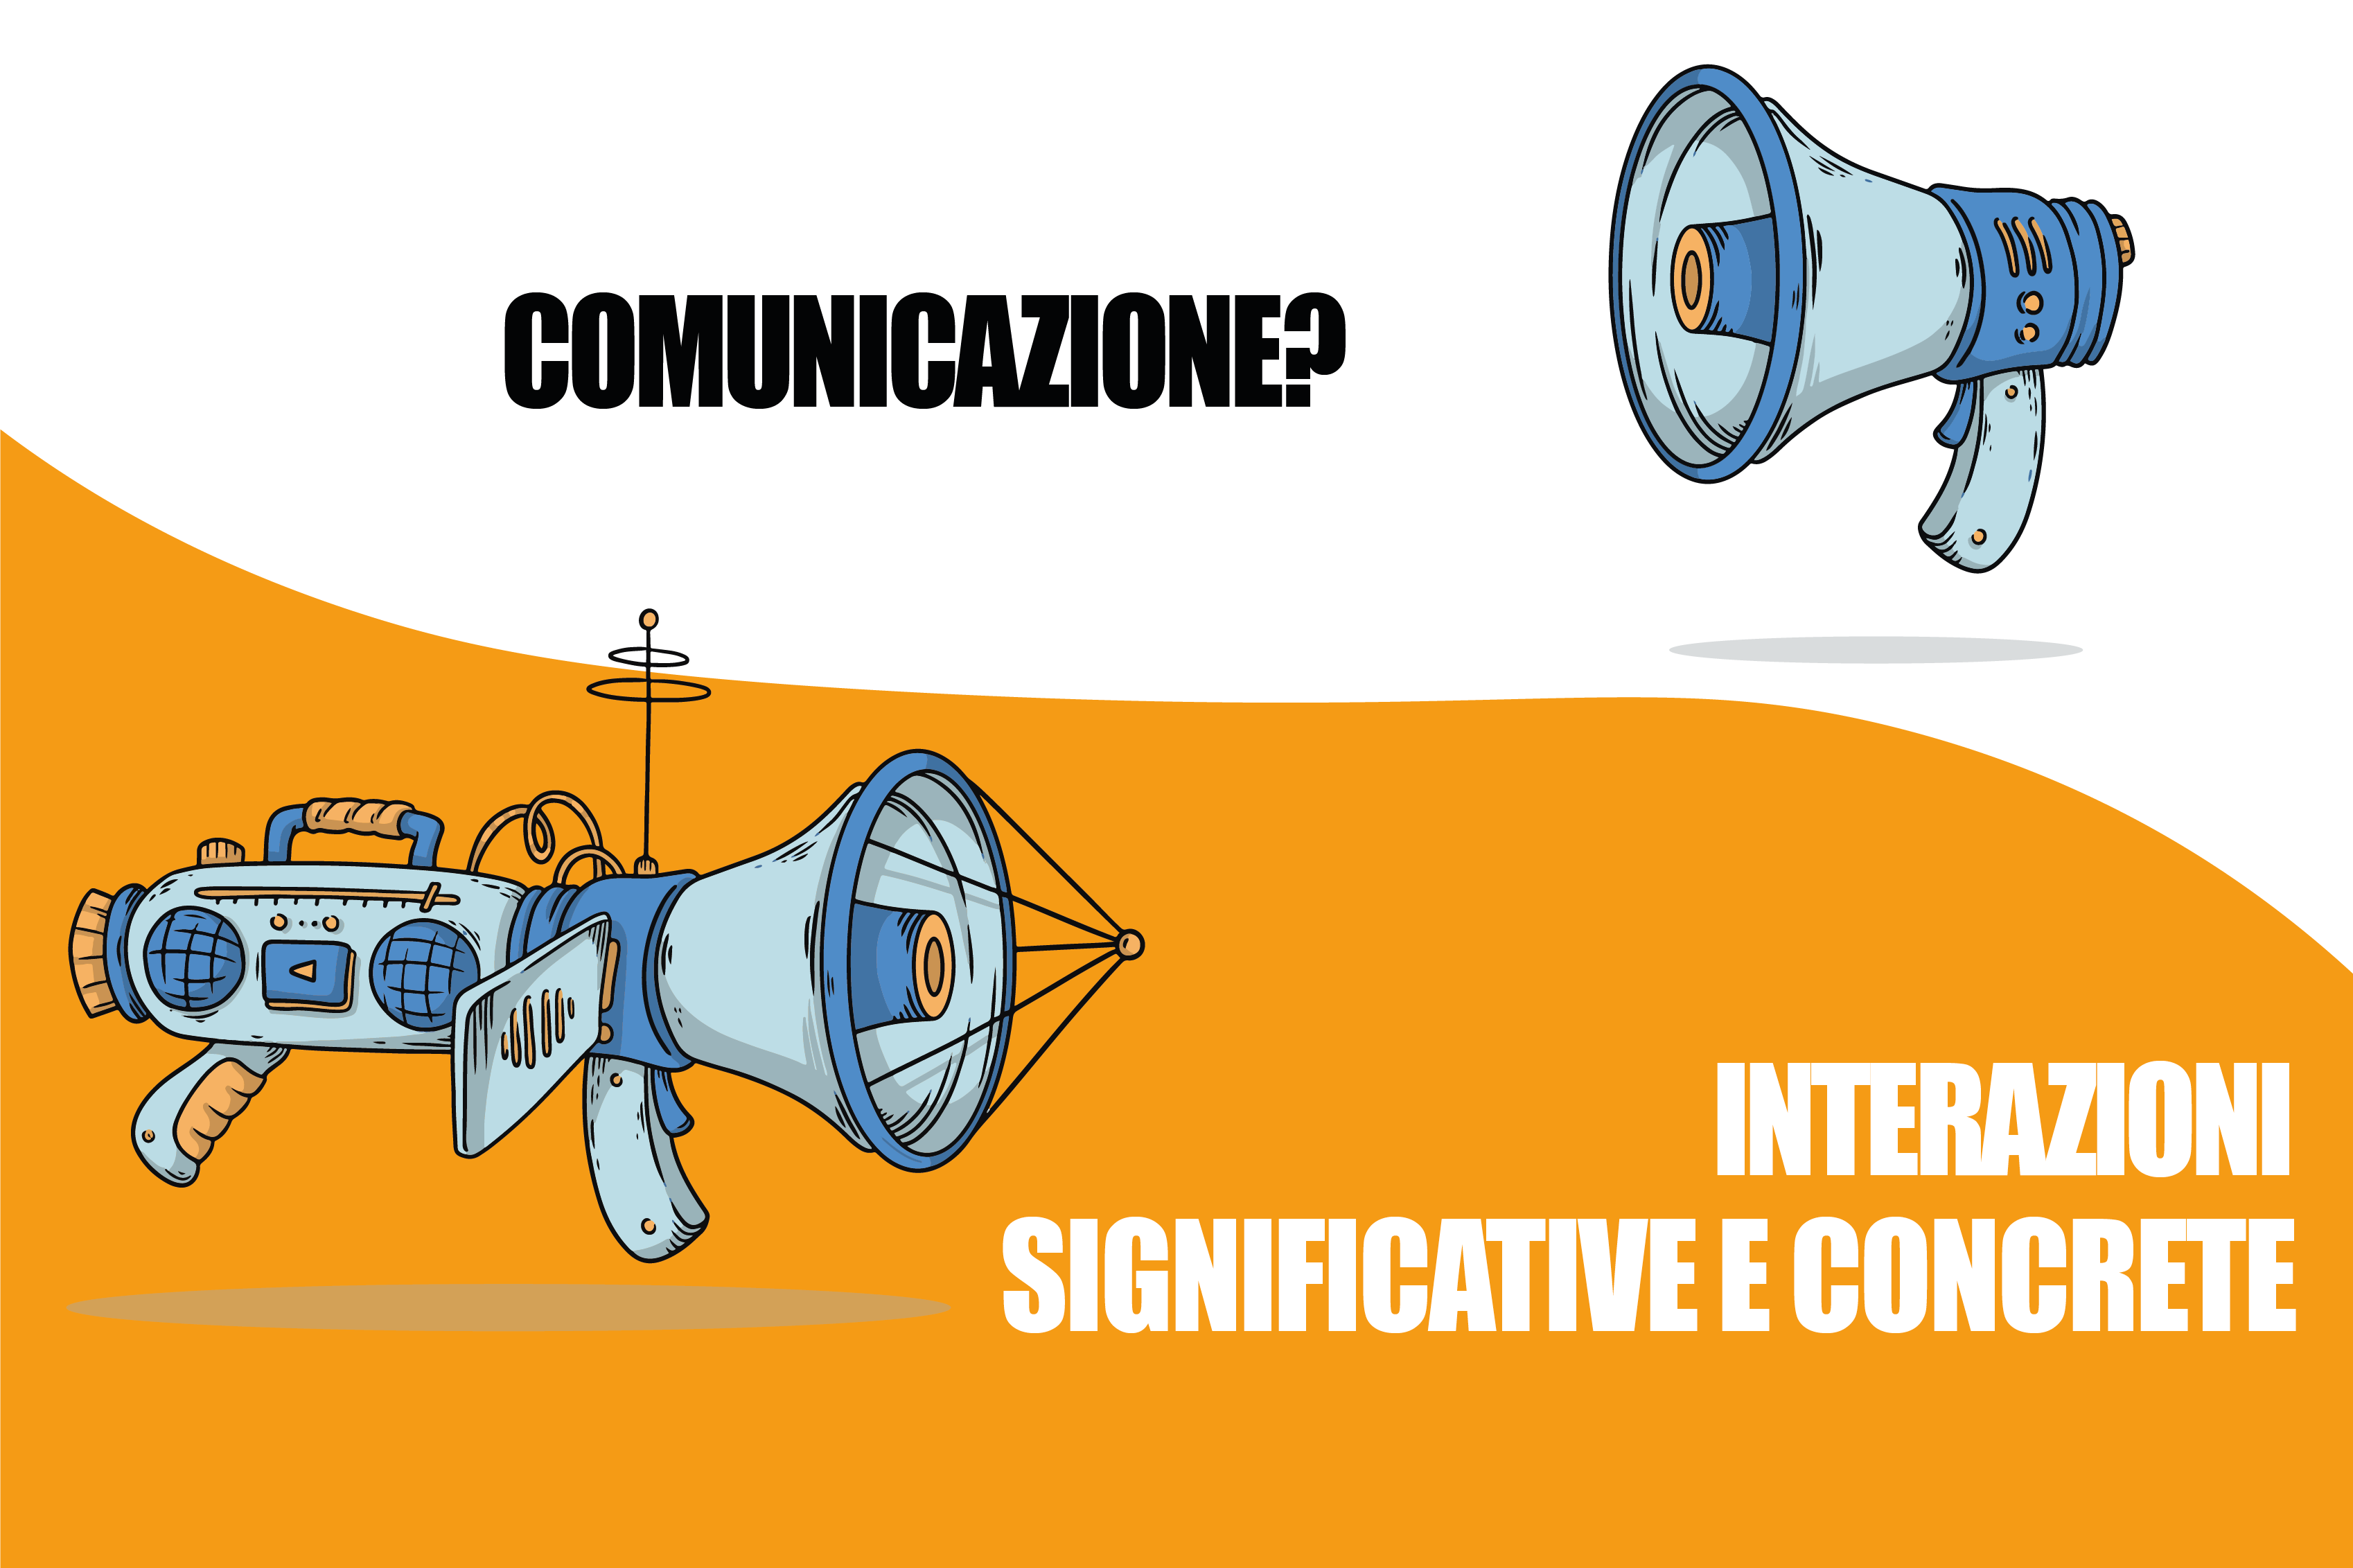 Comunicazione? Interazioni significative e concrete - Blog - Creative Web Studio - Web Agency